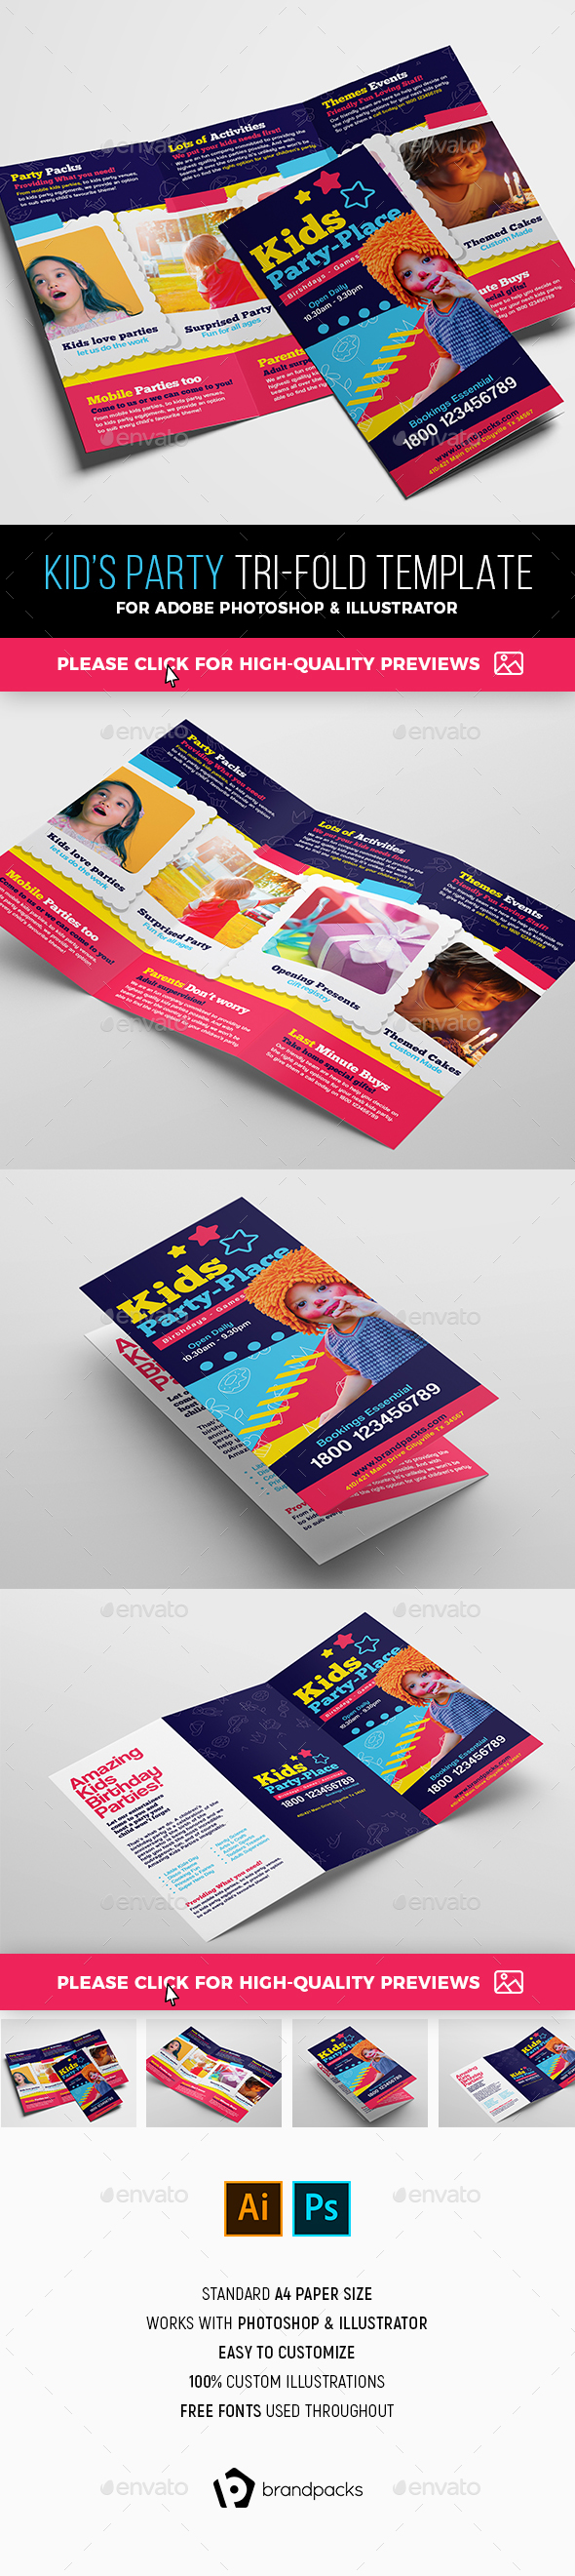 Kid's Party Tri-Fold Brochure Template - Corporate Brochures